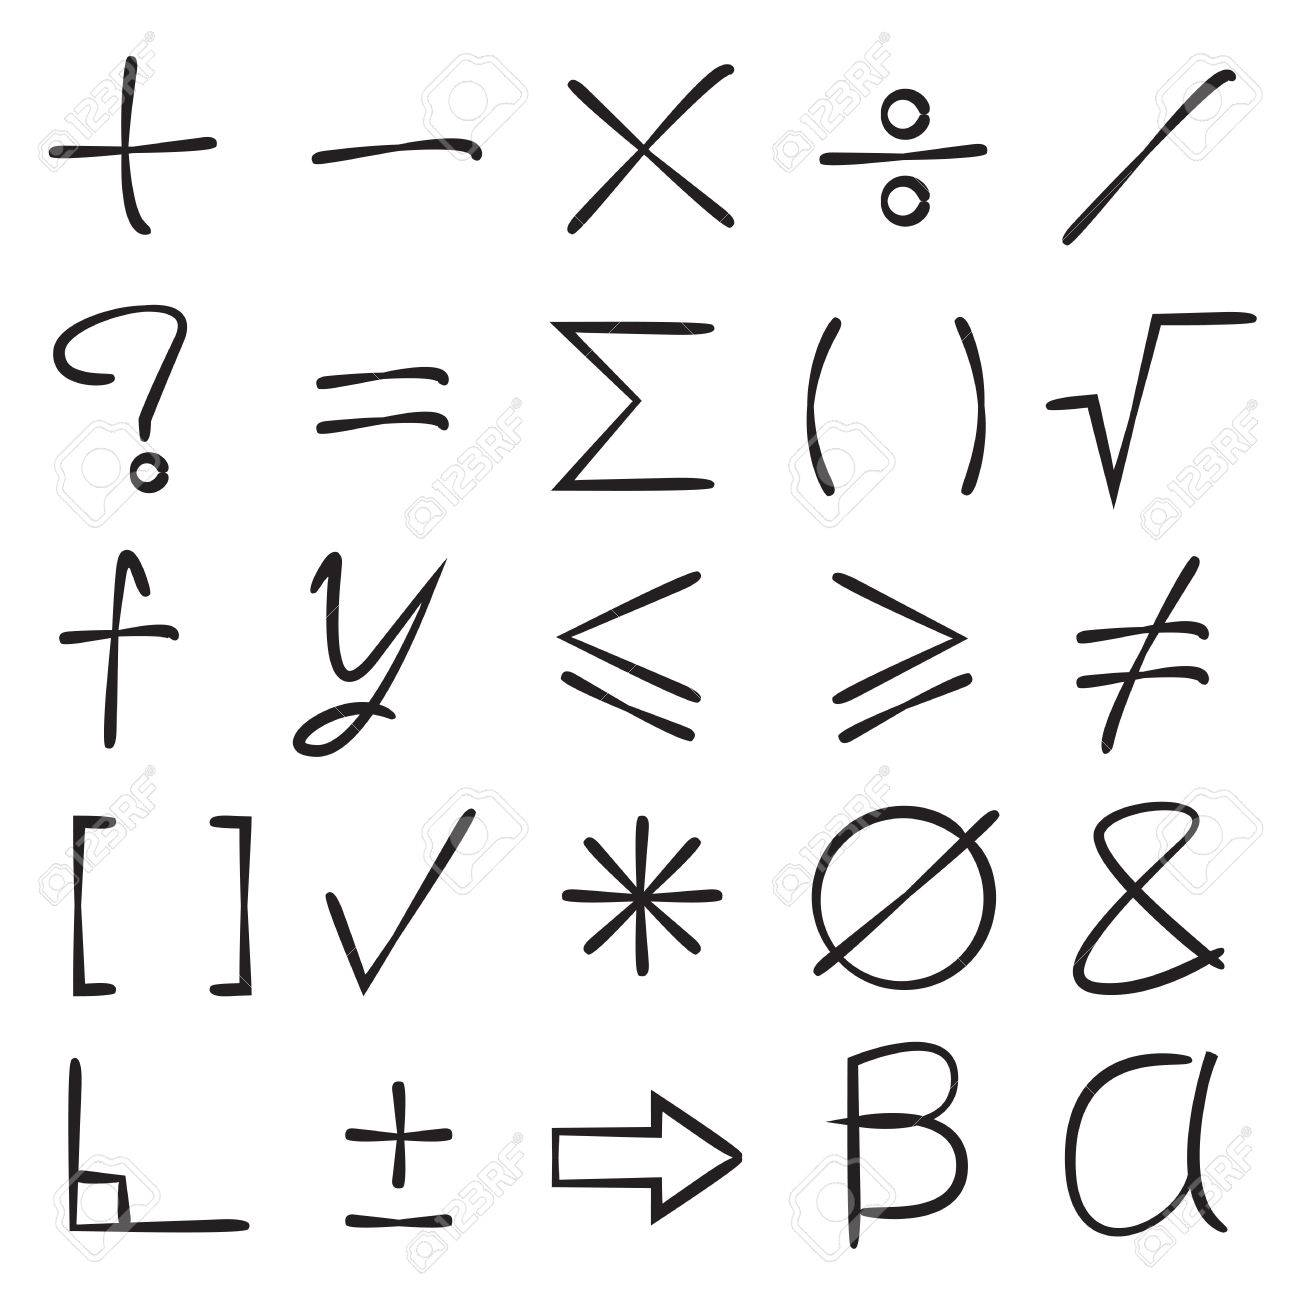 hand drawn math signs on white background. royalty free cliparts